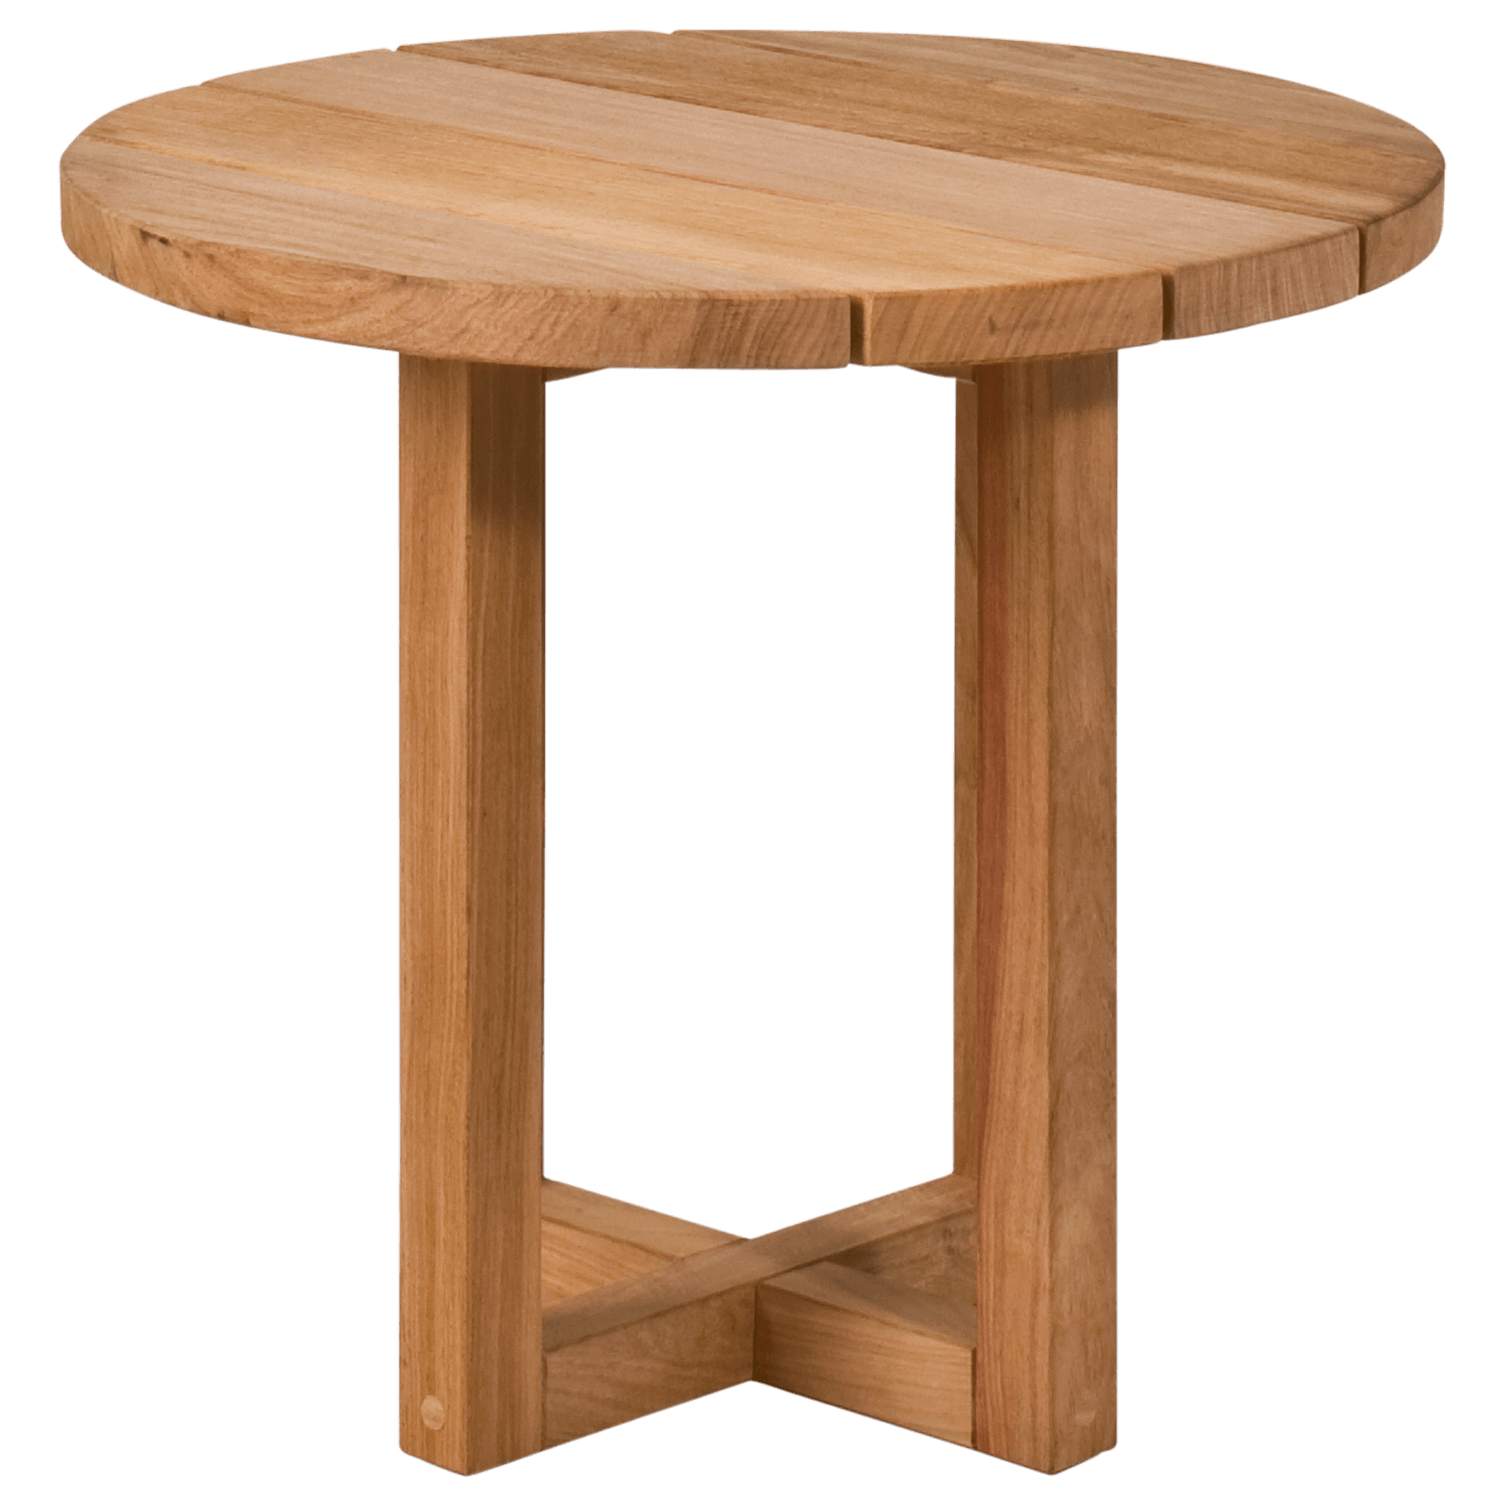 Coffee Table PNG Image.